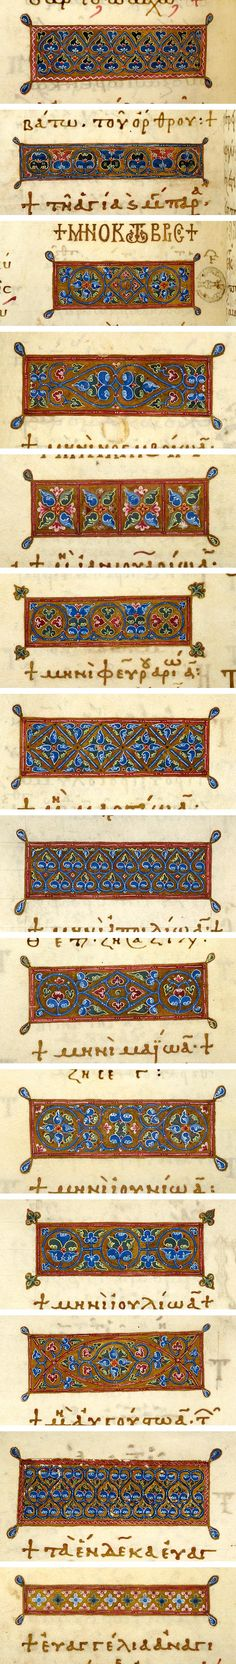 Hamilton lectionary   Constantinople   end of 11th century   The Morgan Library & Museum